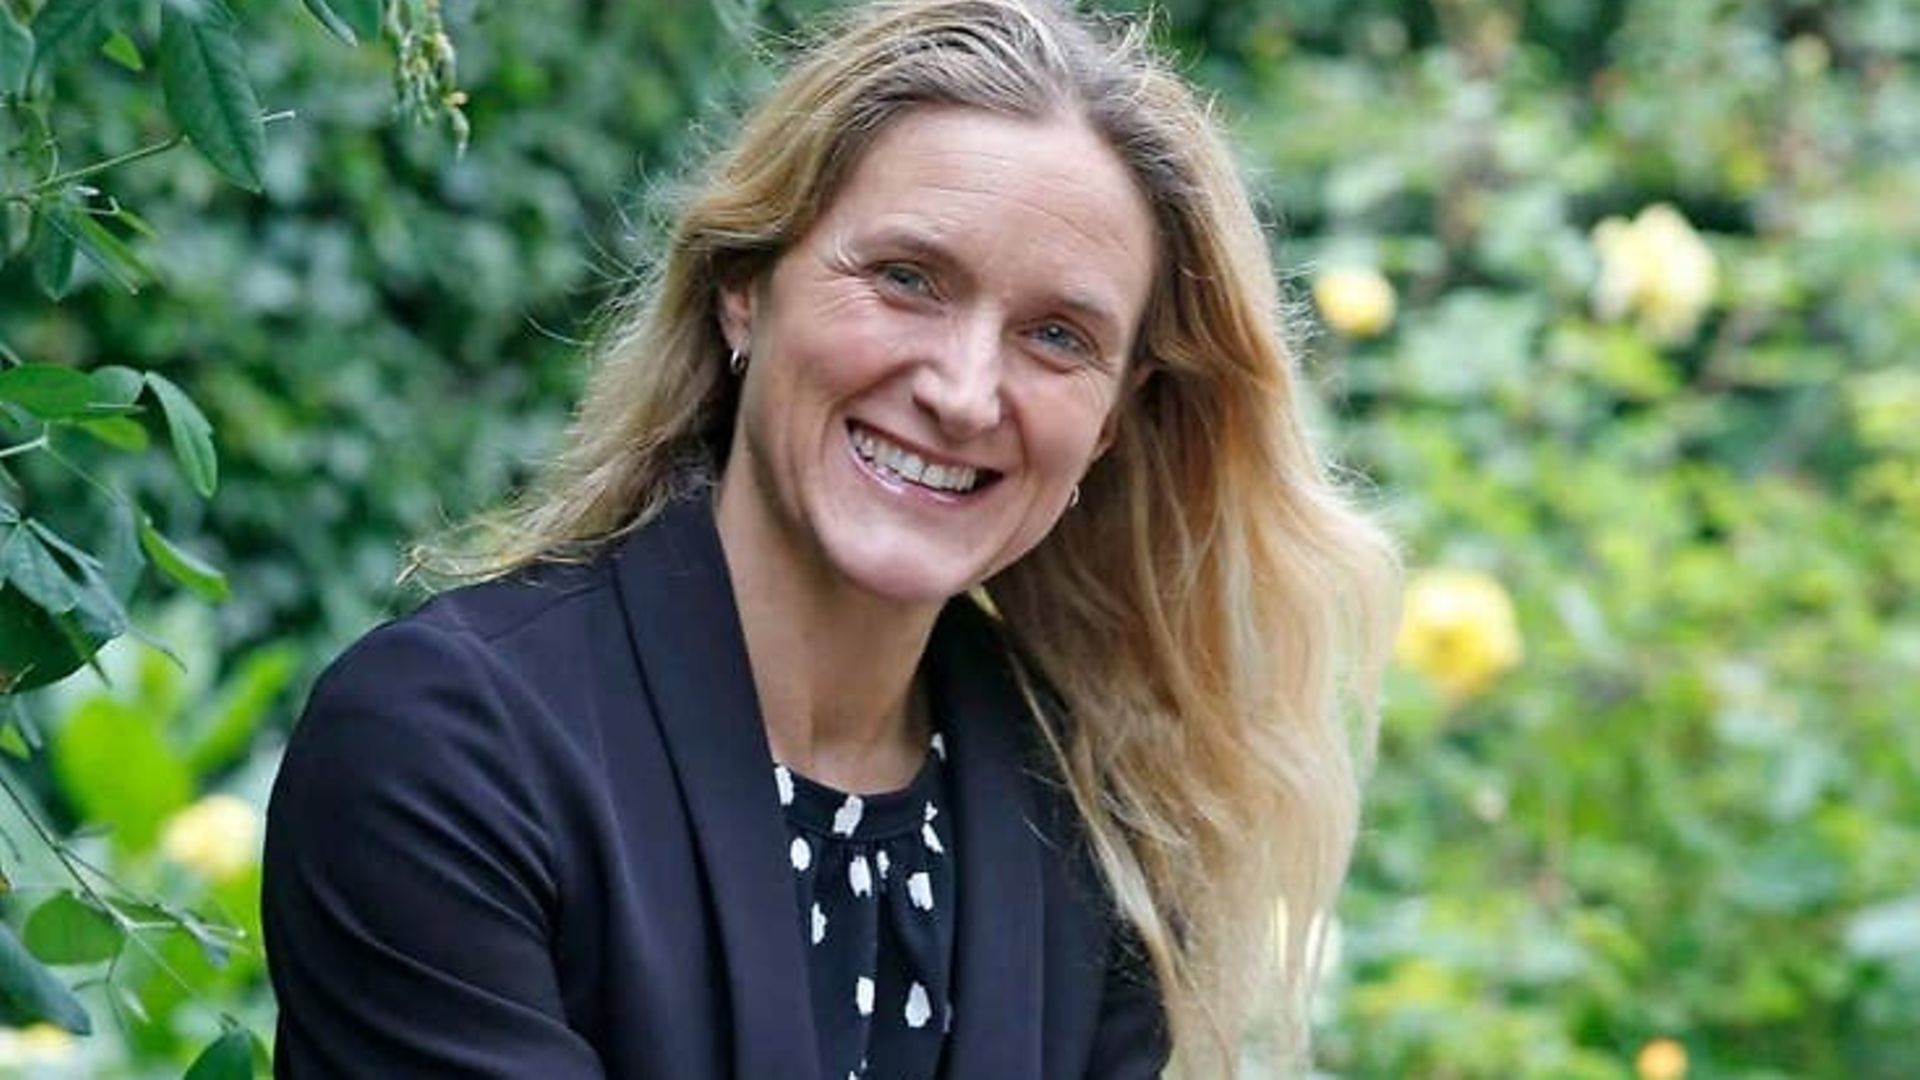 Kim Leadbeater, the sister of murdered MP Jo Cox, has been chosen as Labour's candidate to fight the Batley and Spen by-election. - Credit: PA